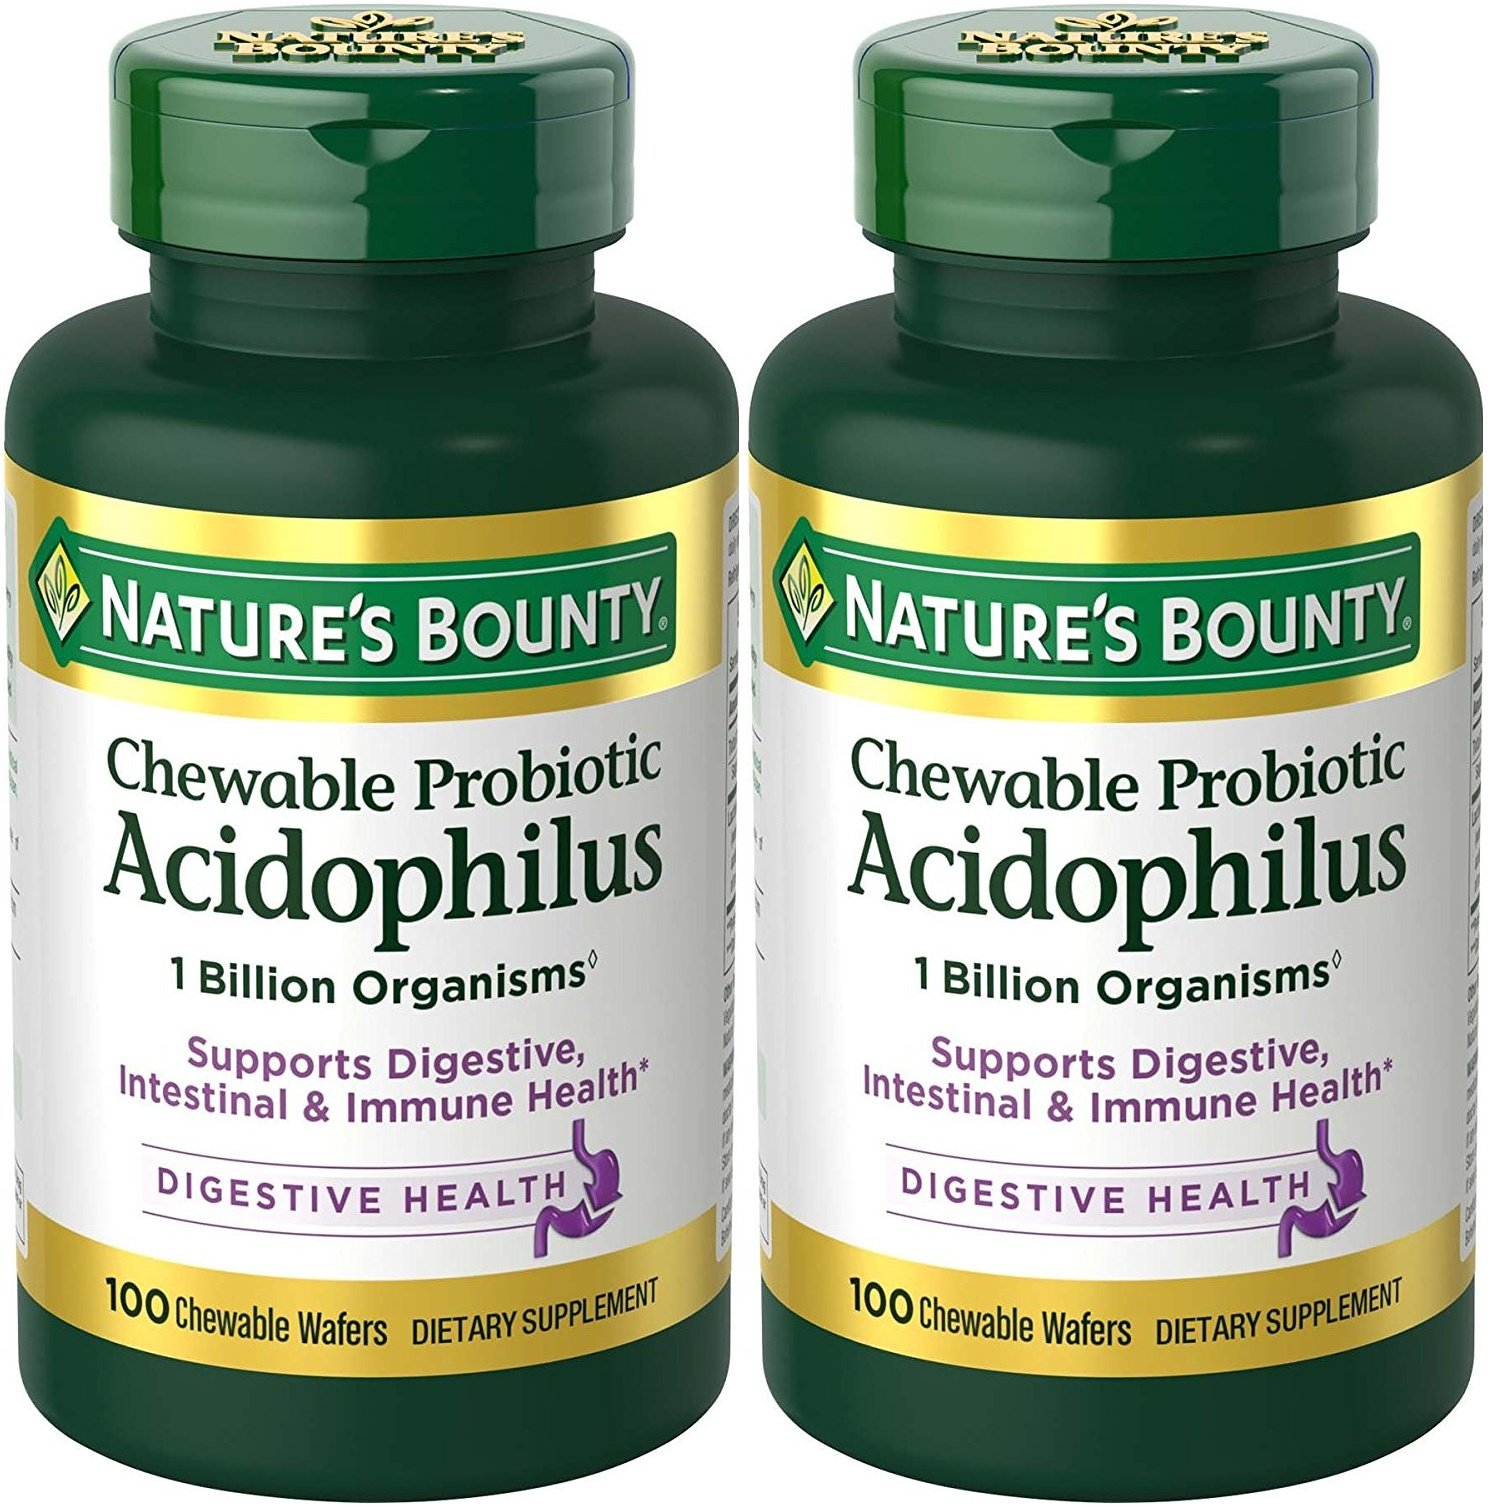 Nature's Bounty Acidophilus with Lactis Chewable Milk Free Wafers, Natural Strawberry Flavor, 100 Count (Pack of 2)